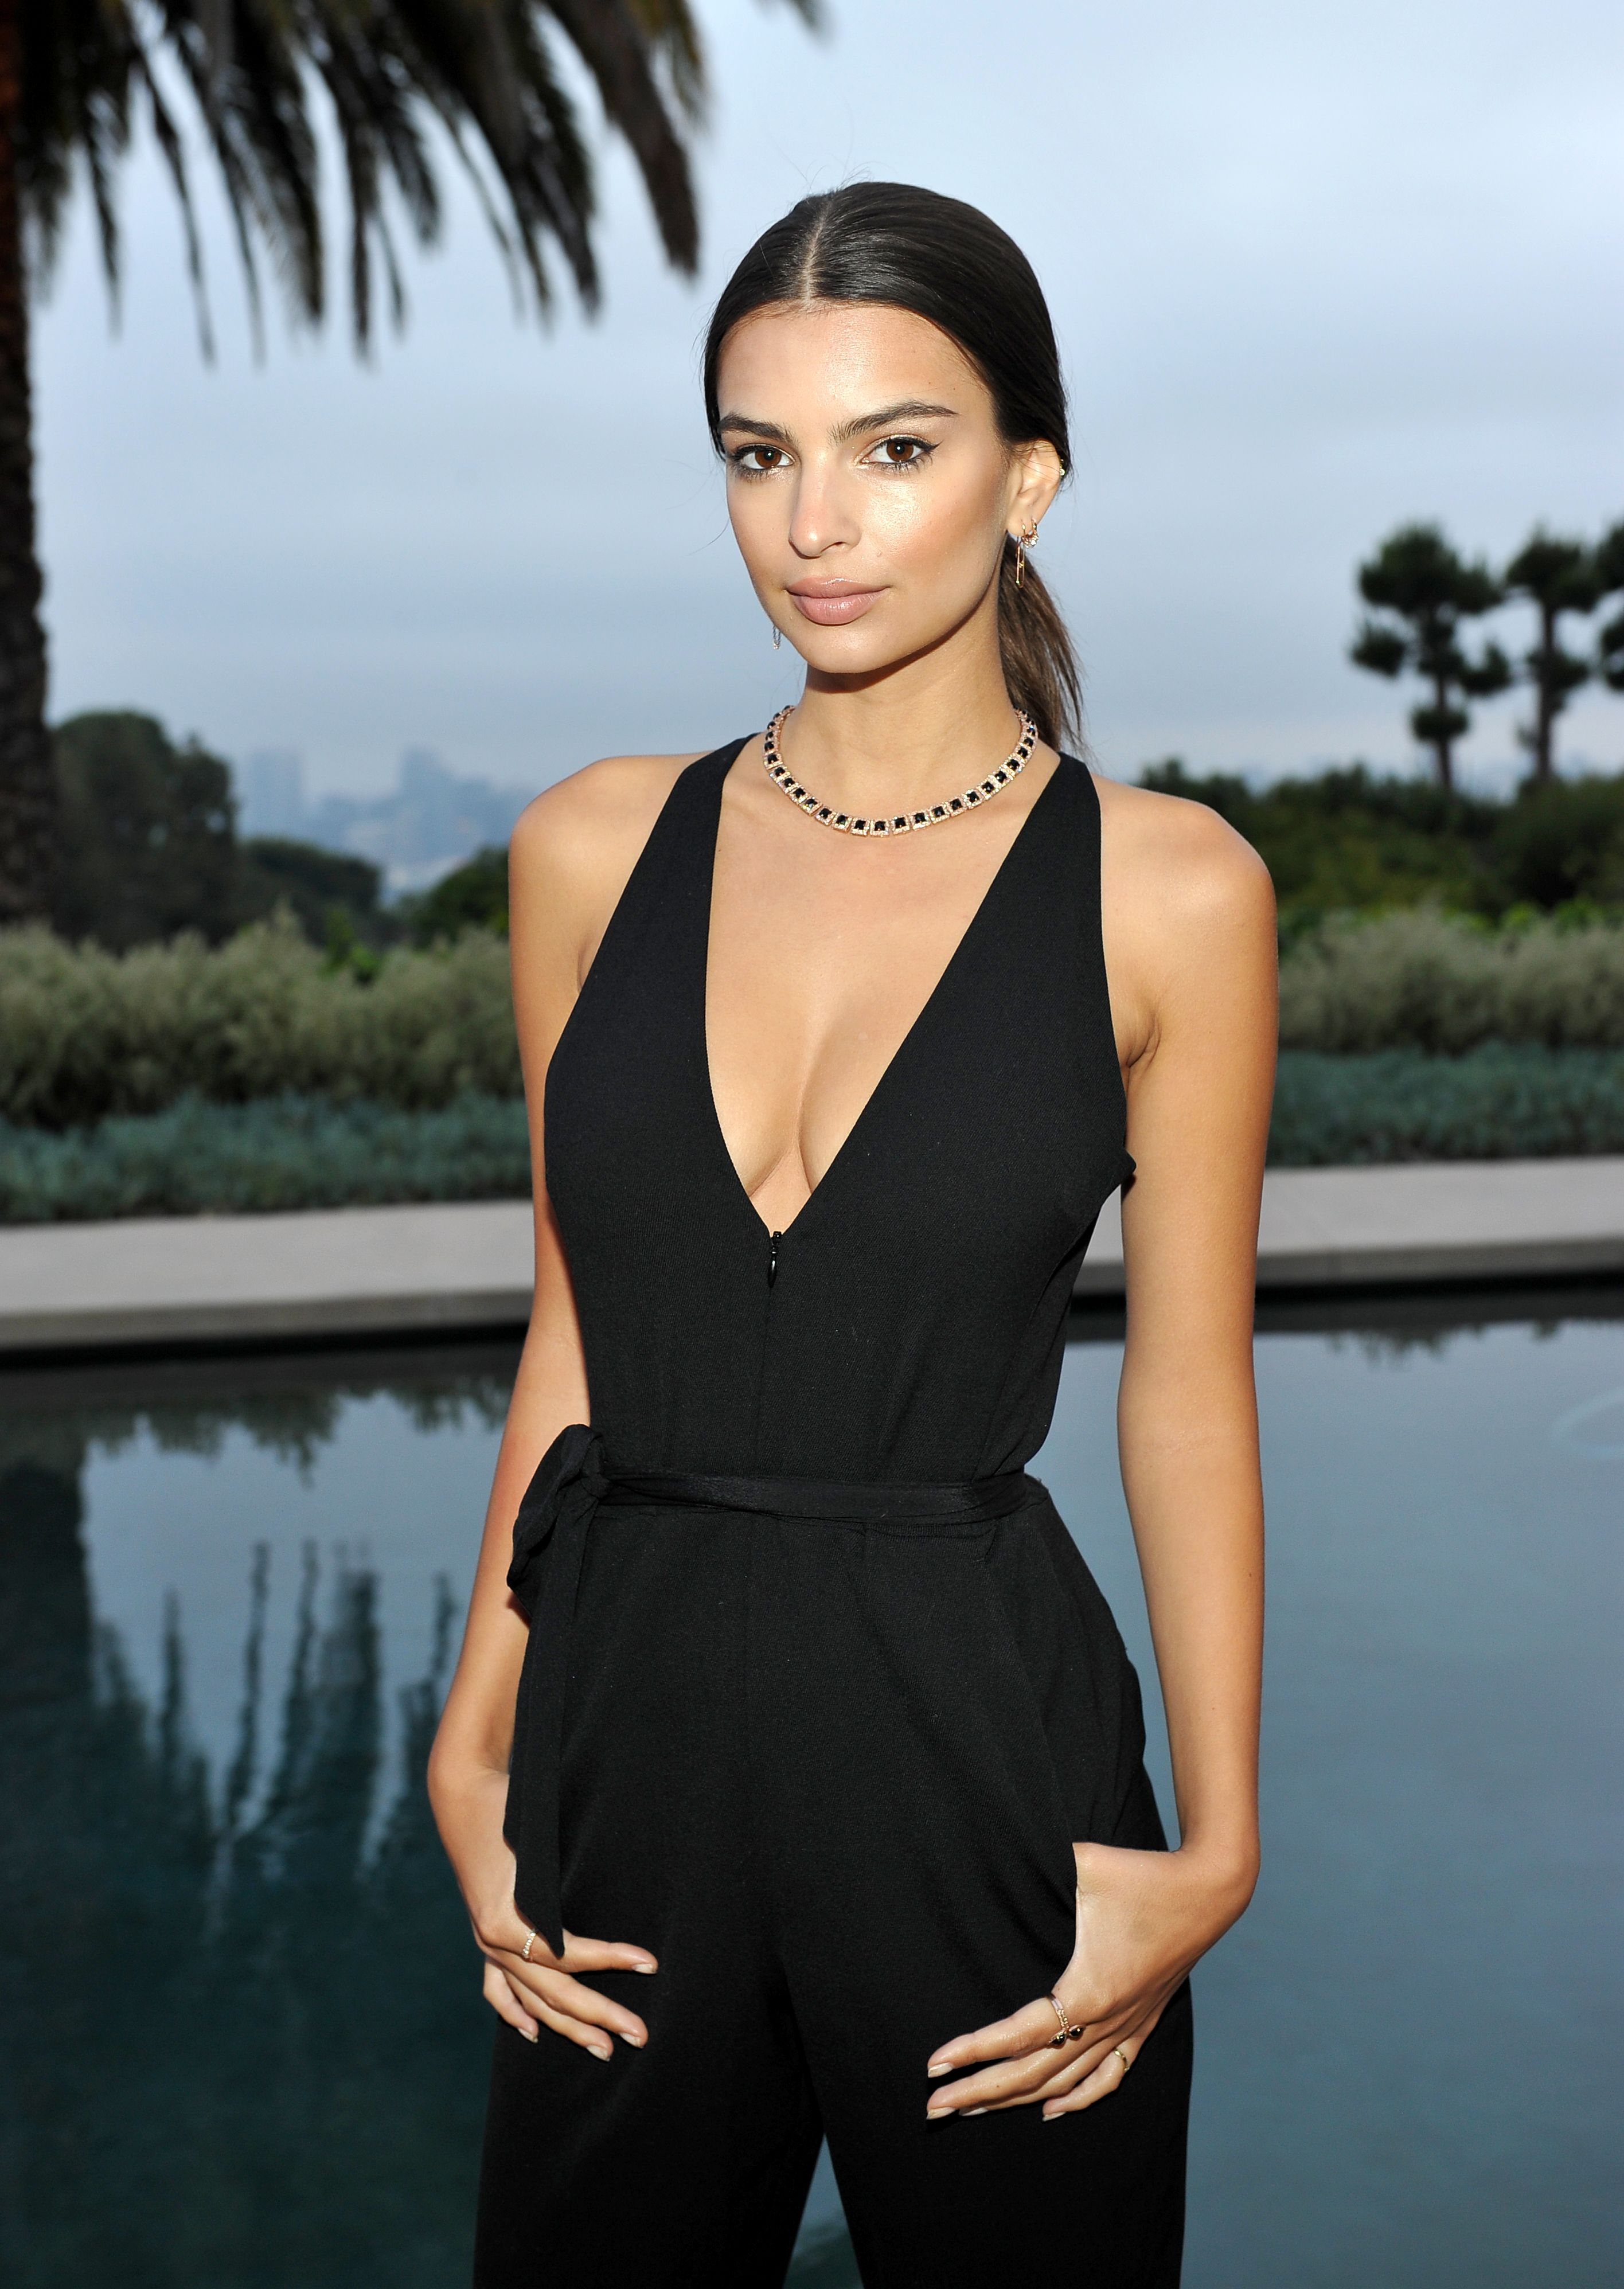 Emily Ratajkowski Discusses How Being Sexy Affects Her Work Opportunities